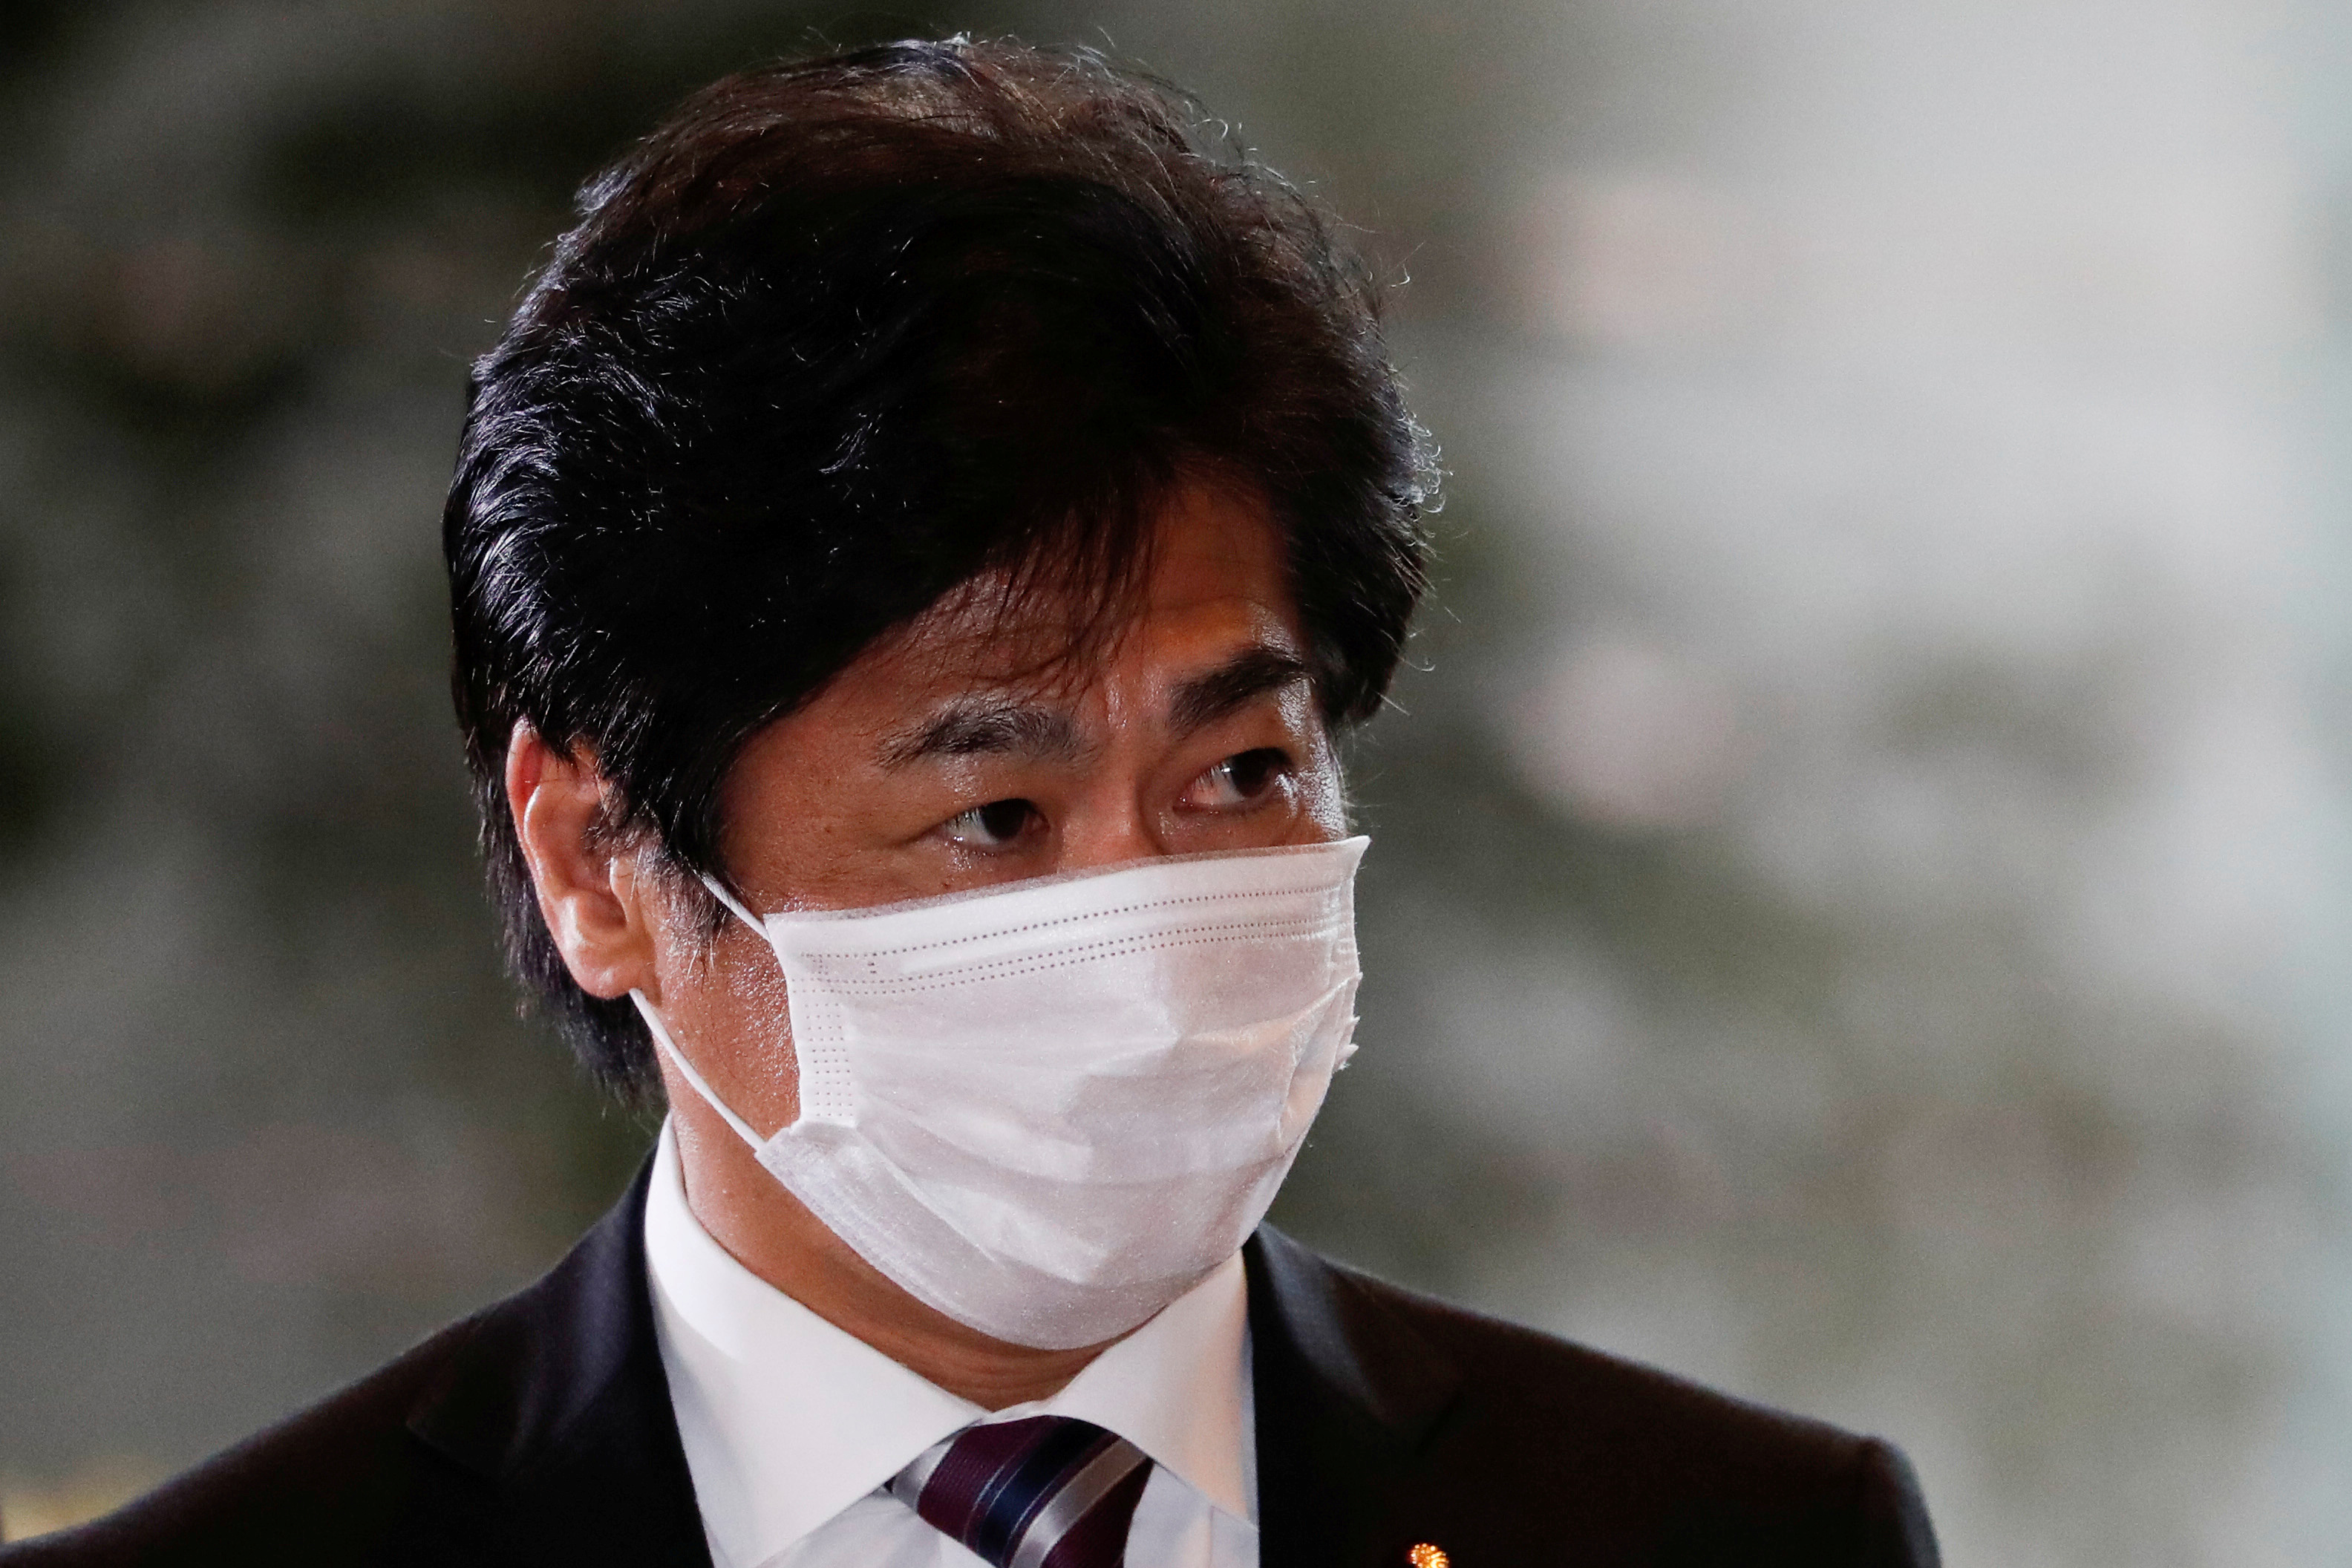 Japan's Health, Labor and Welfare Minister Norihisa Tamura arrives at Prime Minister Yoshihide Suga's official residence in Tokyo, Japan September 16, 2020. REUTERS/Issei Kato  REFILE  CORRECTING IDENTITY